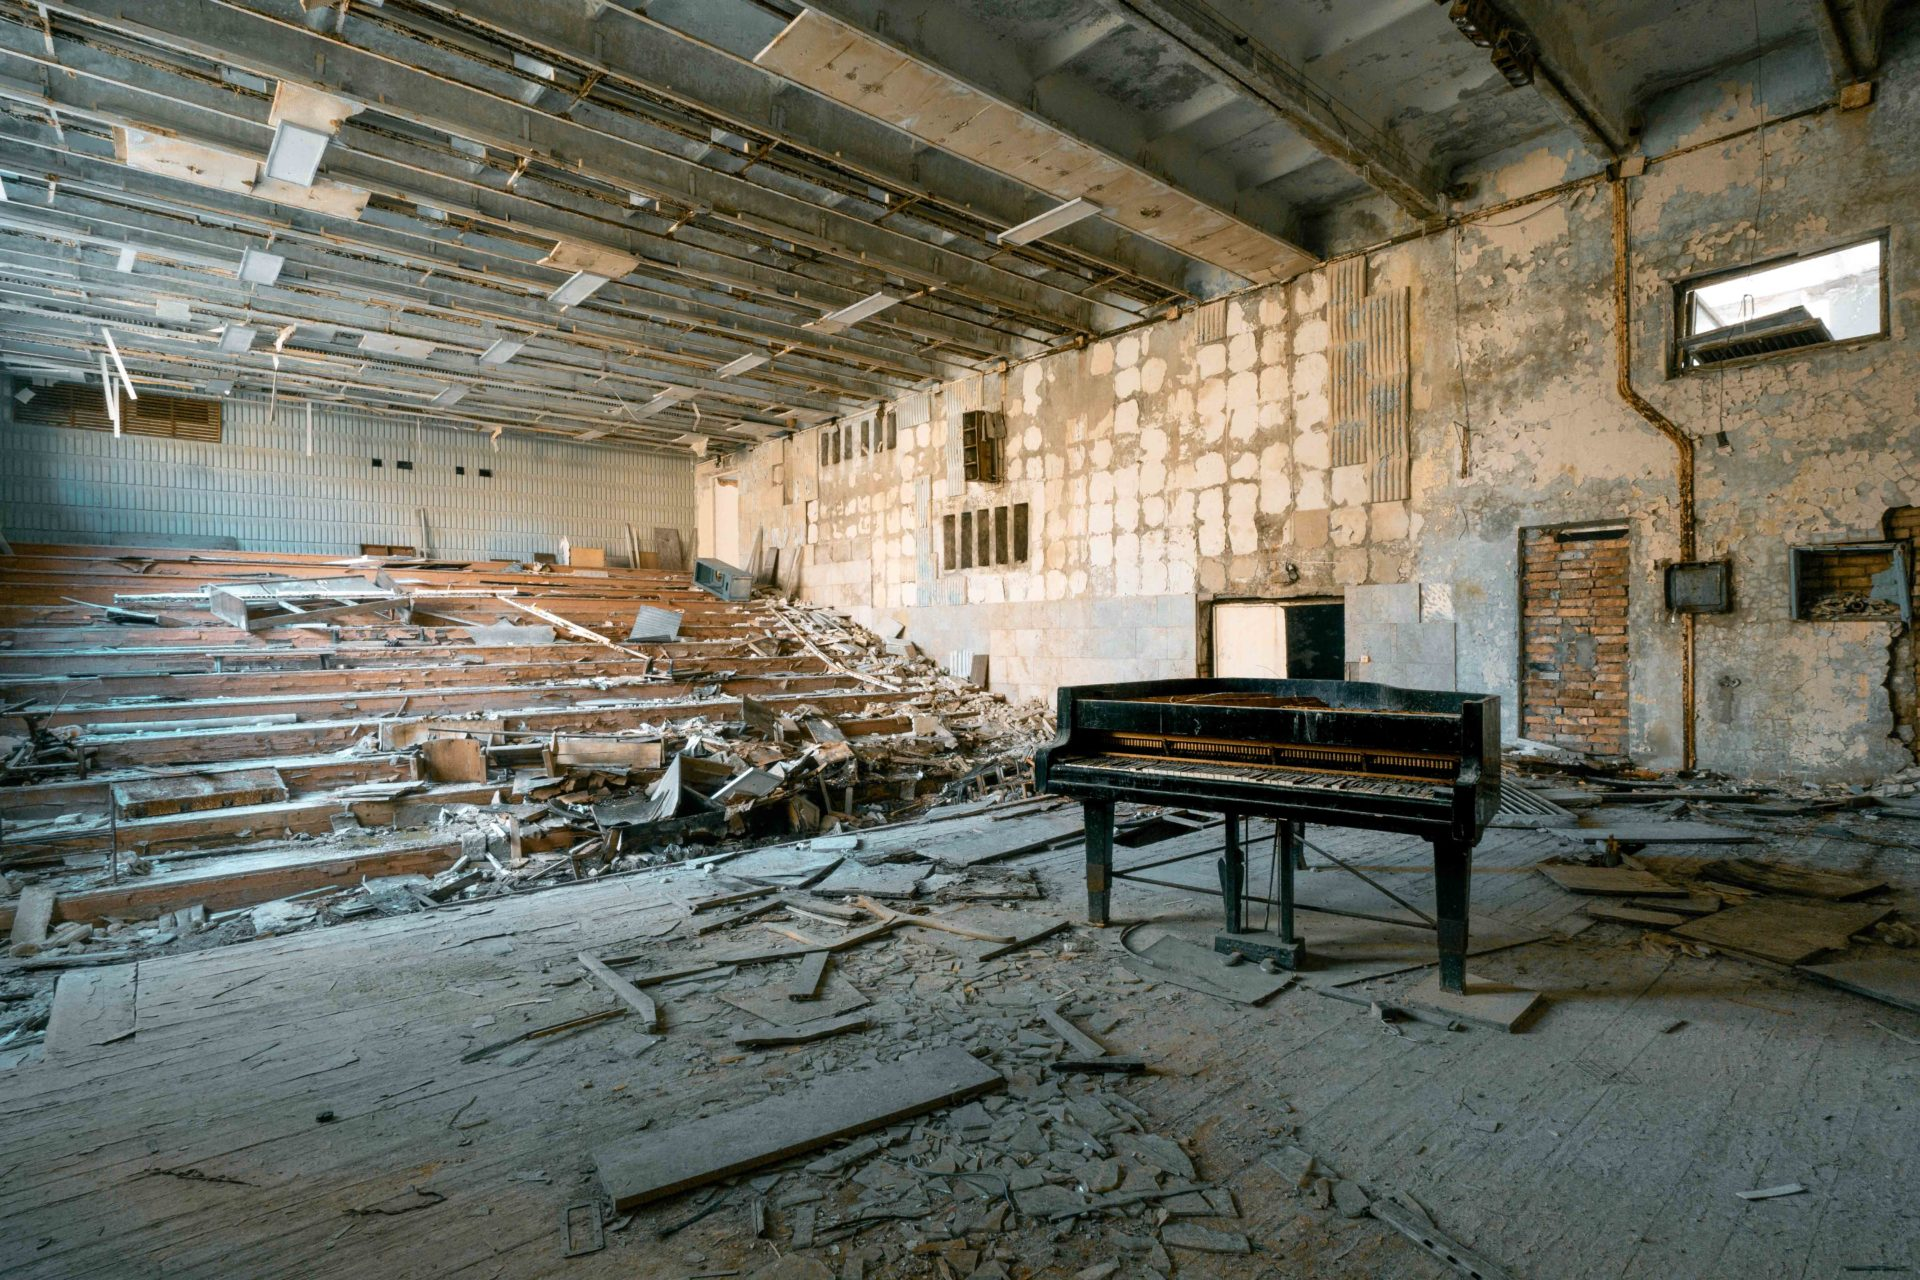 Requiem pour pianos 5 | Serie Requiem pour pianos | Romain Thiery | Chernobyl